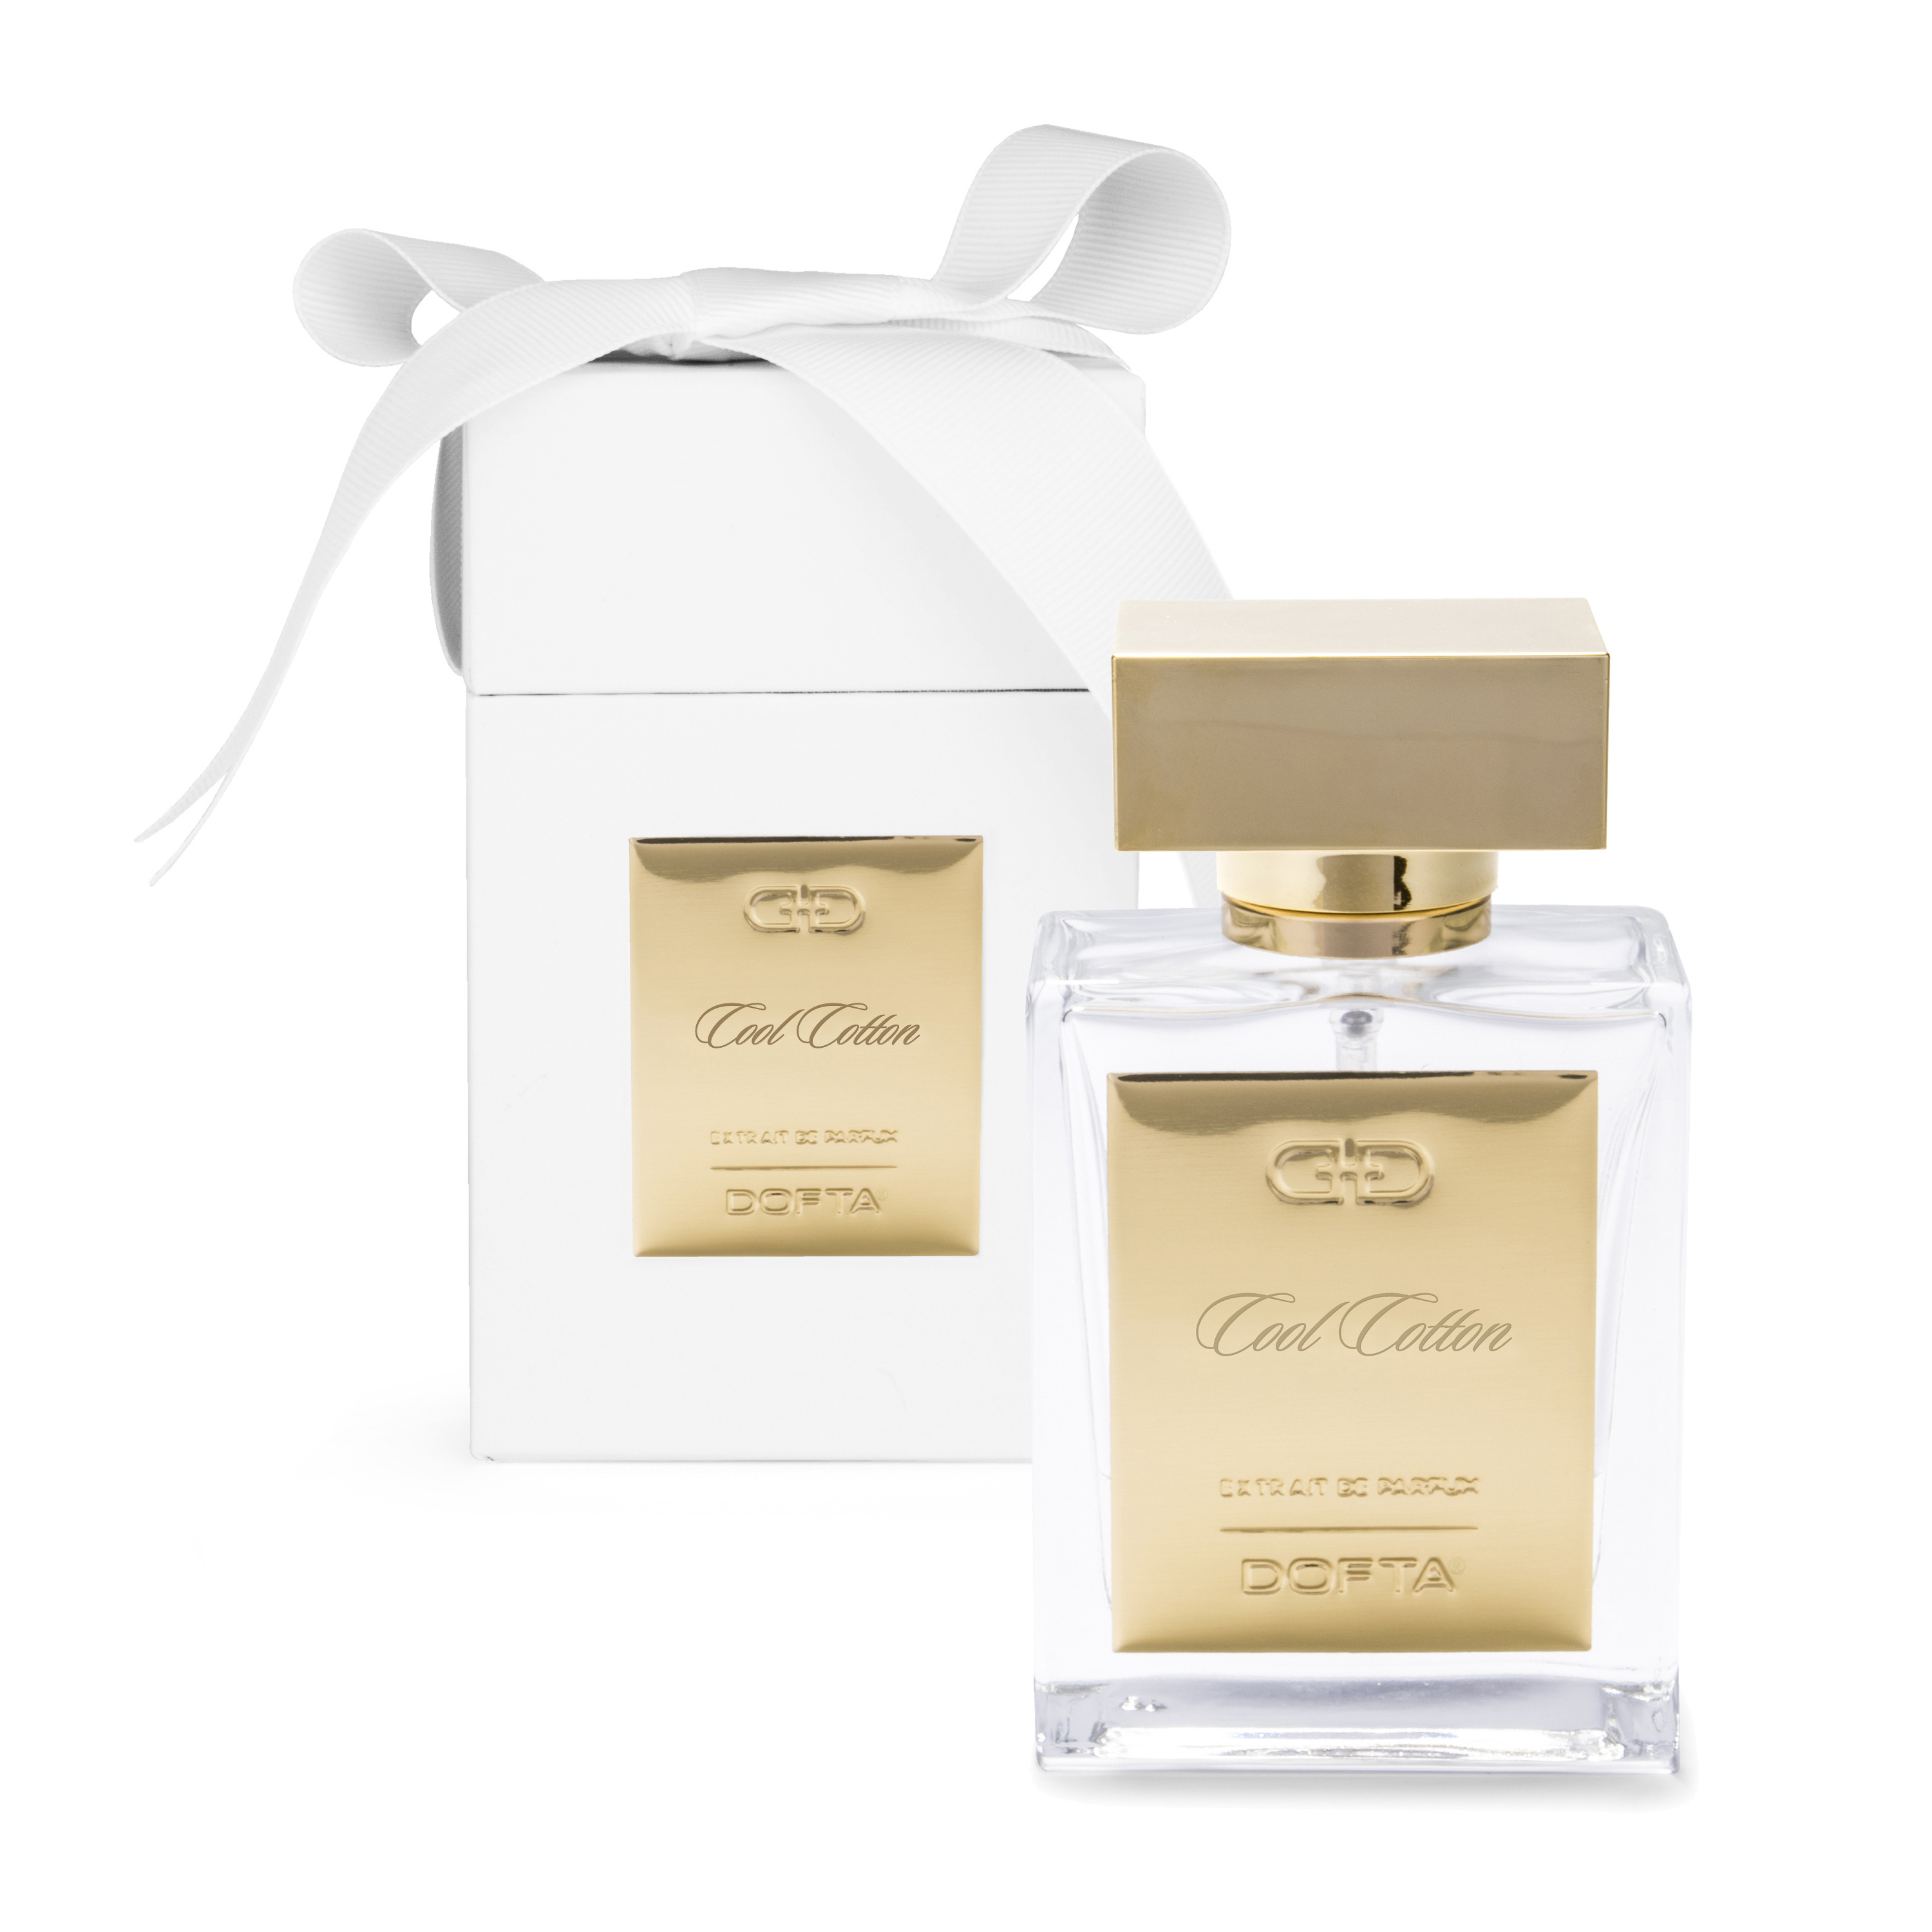 Cool Cotton - White & Gold Extrait de Parfum